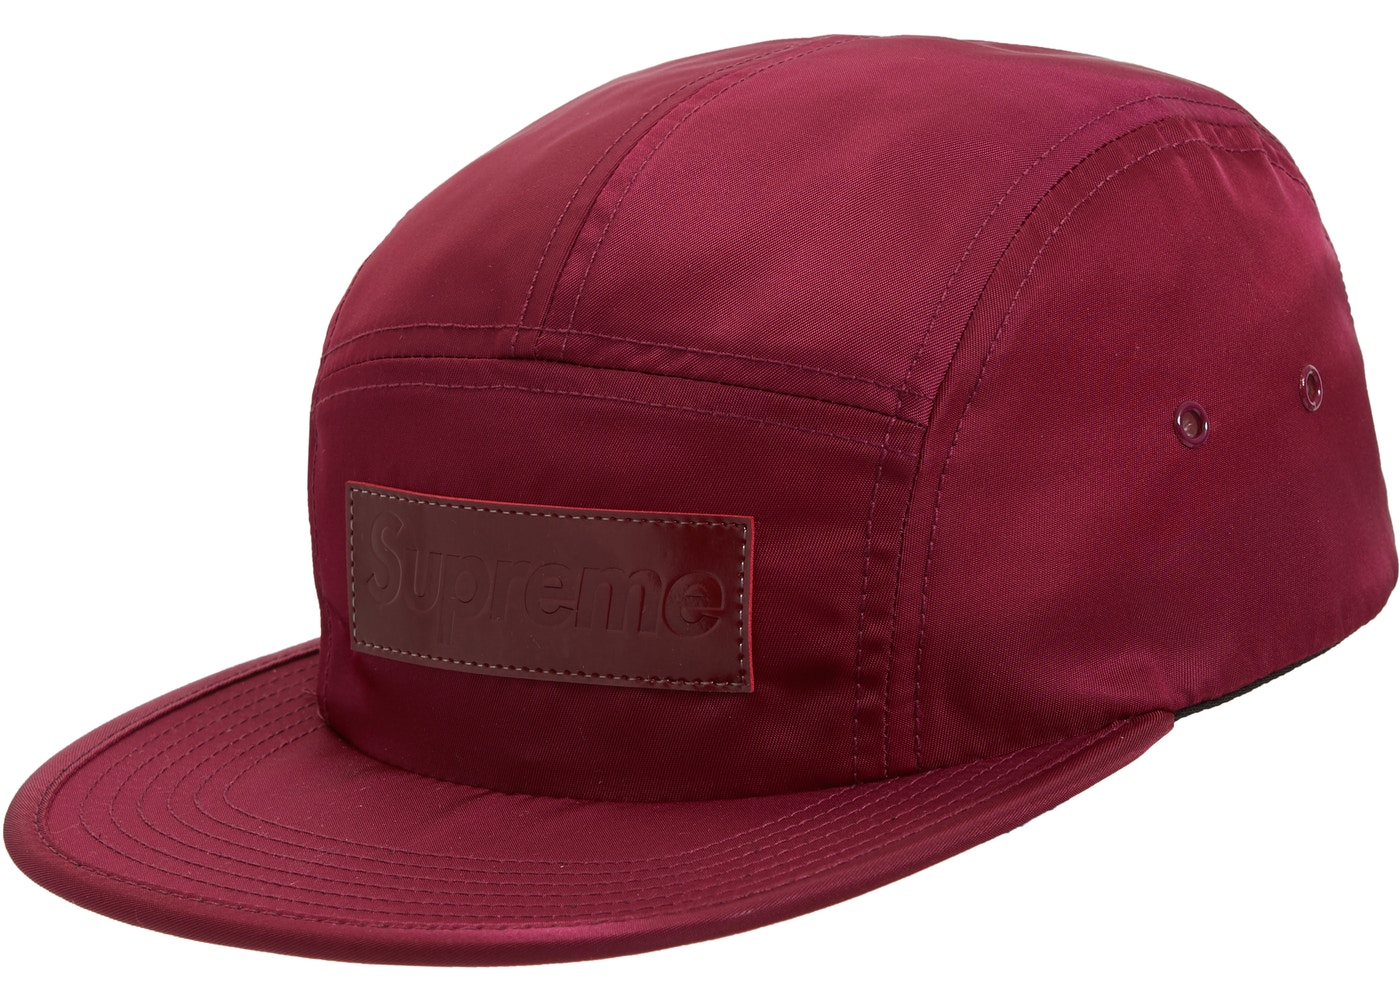 cde0be65cc6014 Supreme Patent Leather Patch Camp Cap Plum - FW18